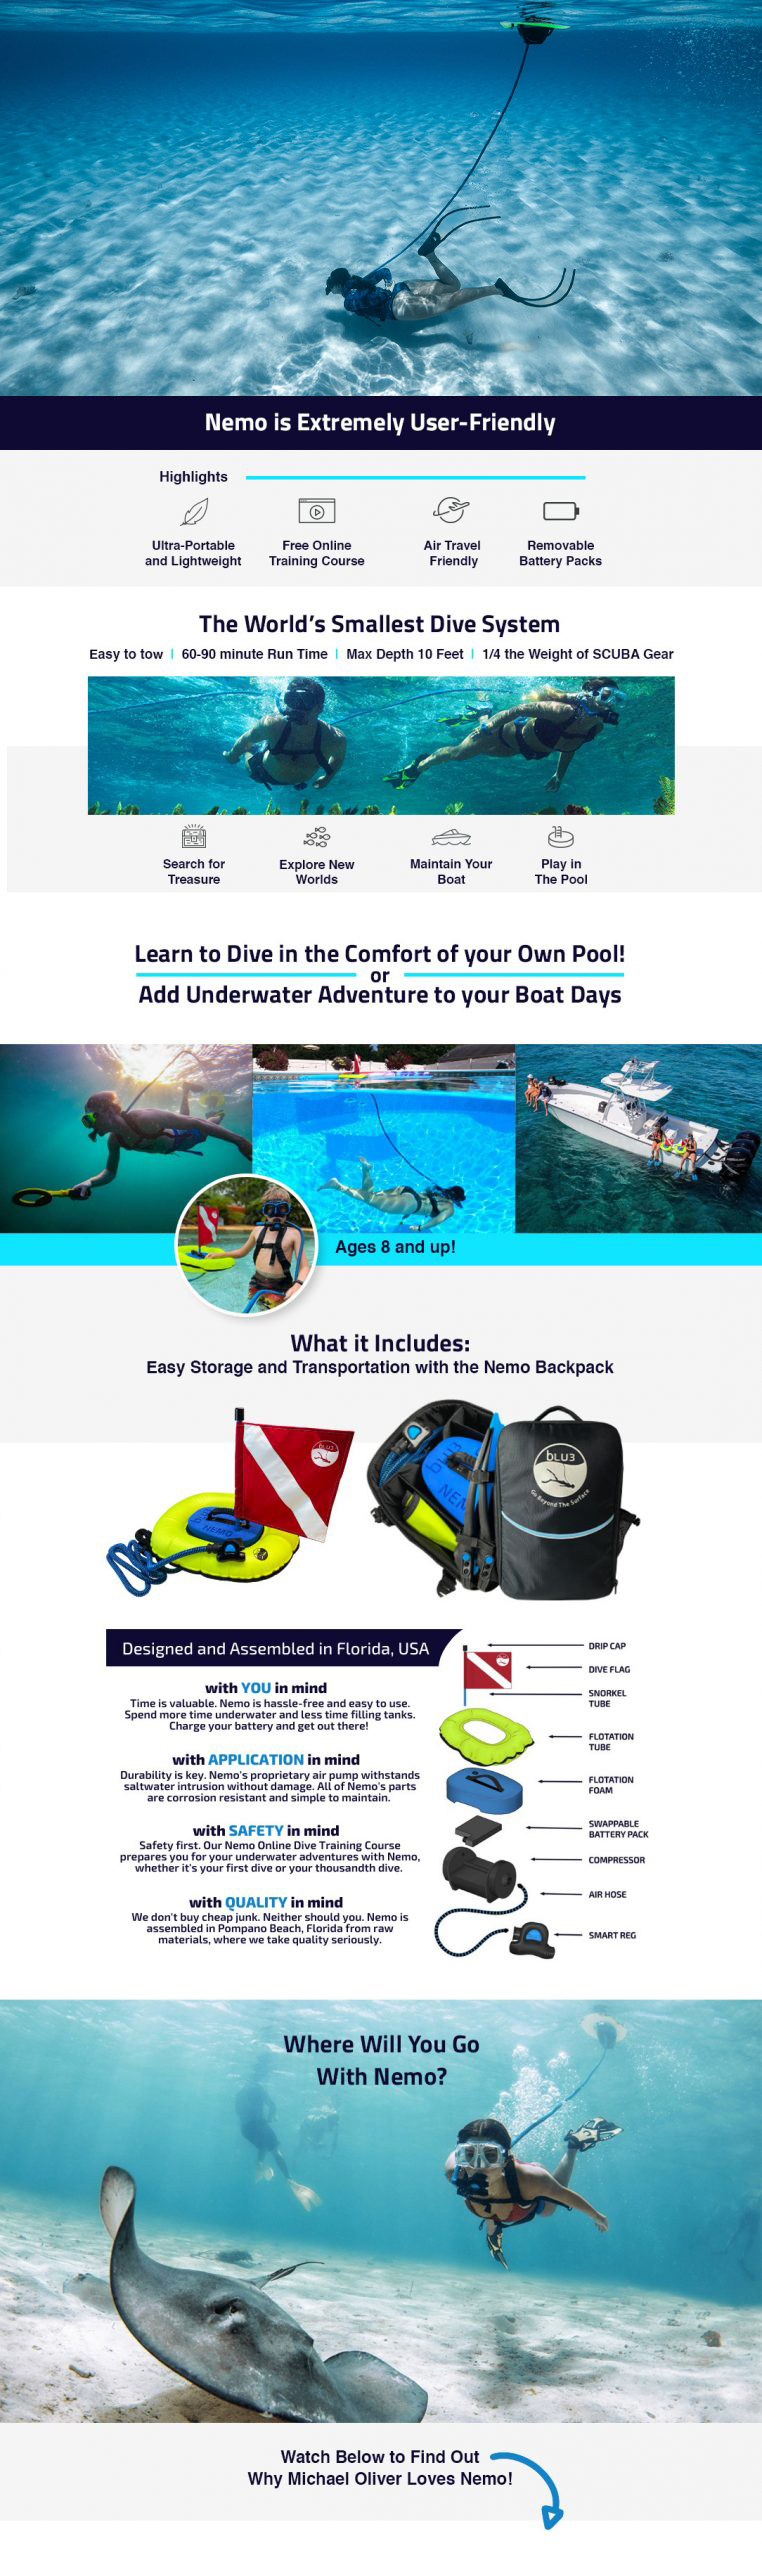 Nemo by BLU3 Worlds Smallest Dive System with backpack